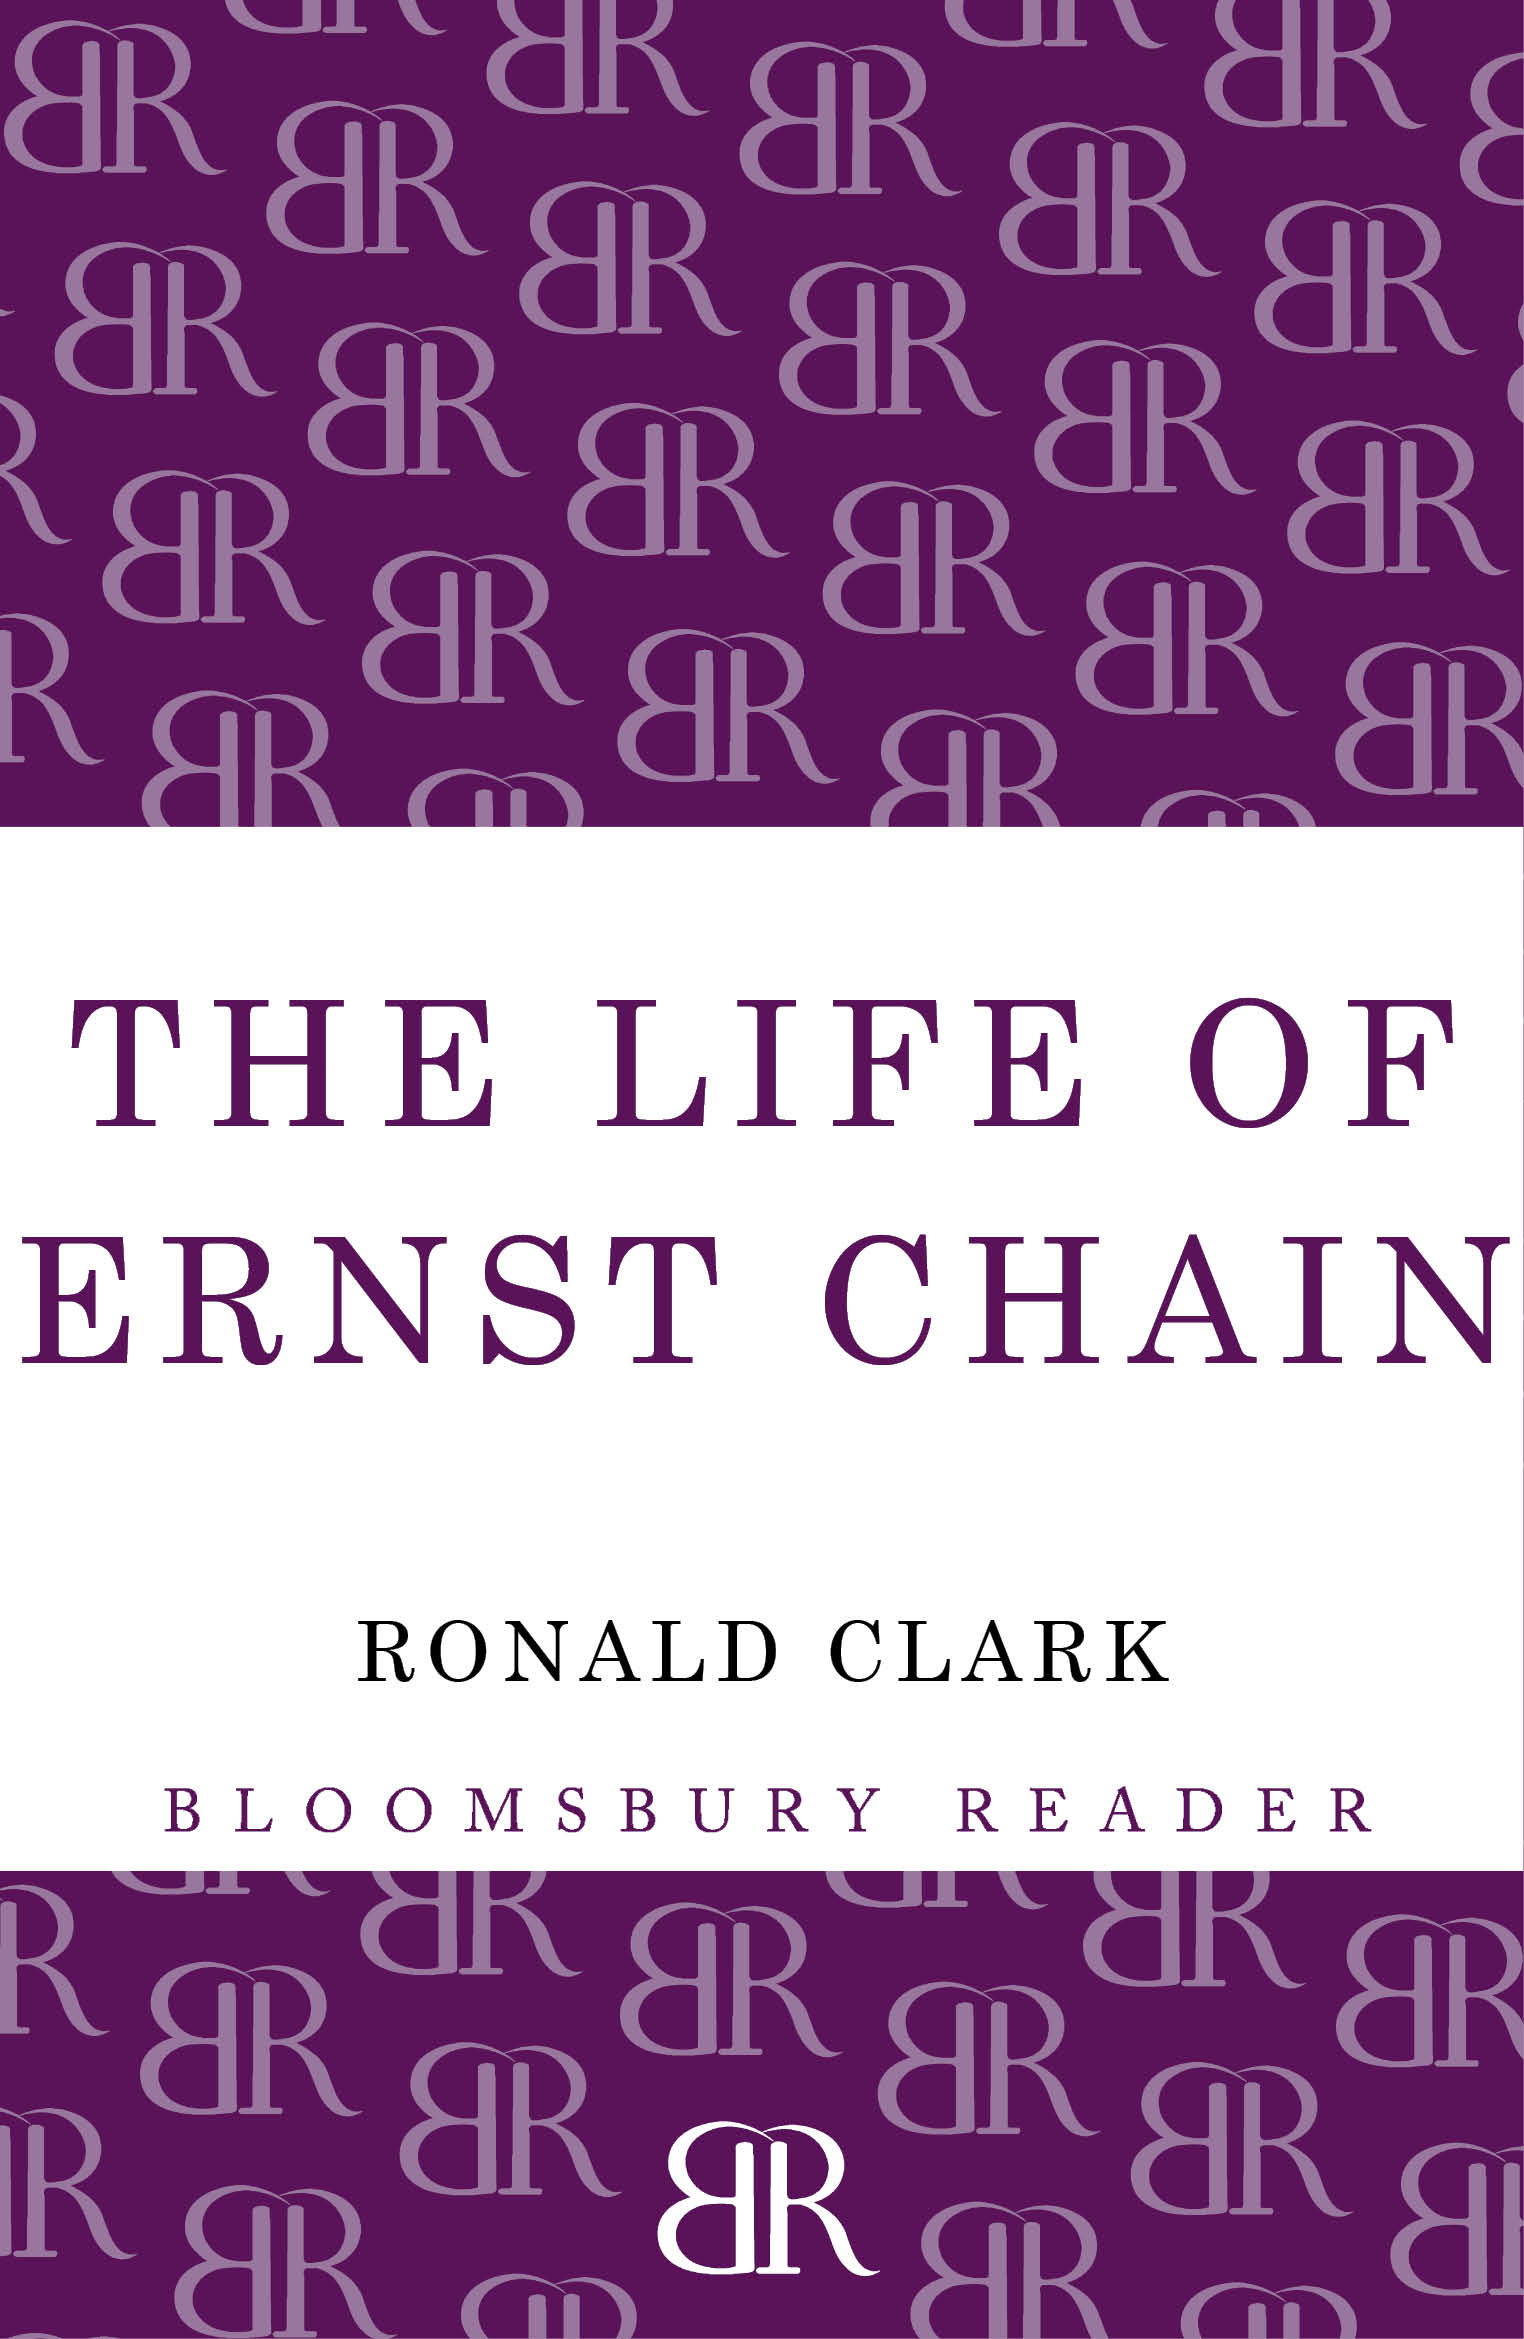 The Life of Ernst Chain: Penicillin and Beyond